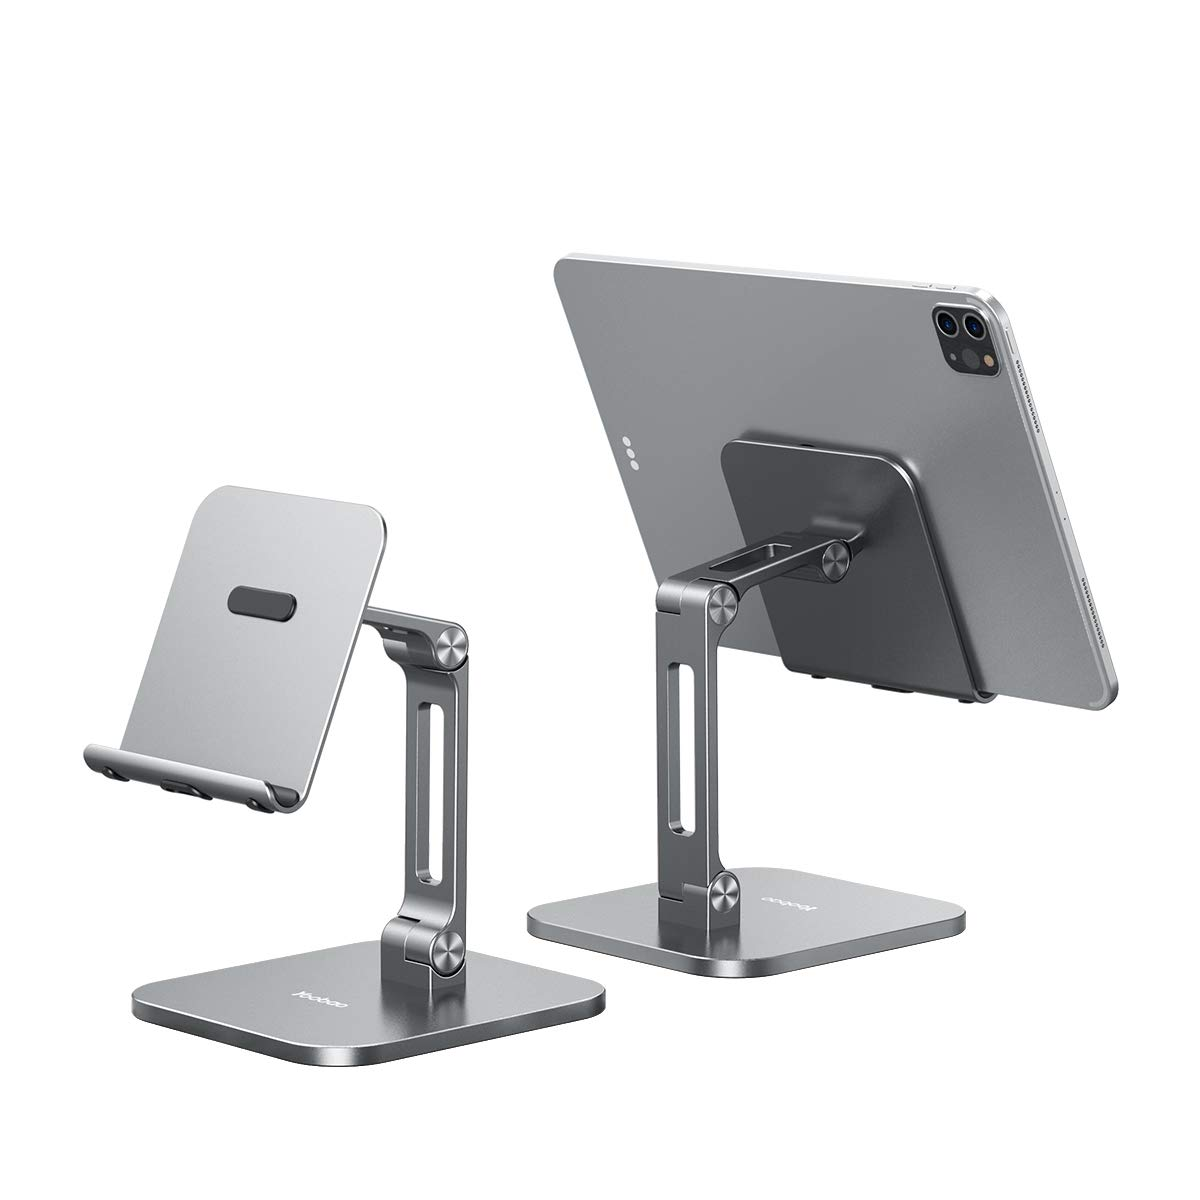 Yoobao Tablet Stand Multi-Angle Tablet Holder Desktop iPad Stand Adjustable& Foldable Aluminum Cell Phone Stand for 4-13'' iPad Pro Air Mini Kindle iPhone 11 Pro XR Xs Max& More-Gray